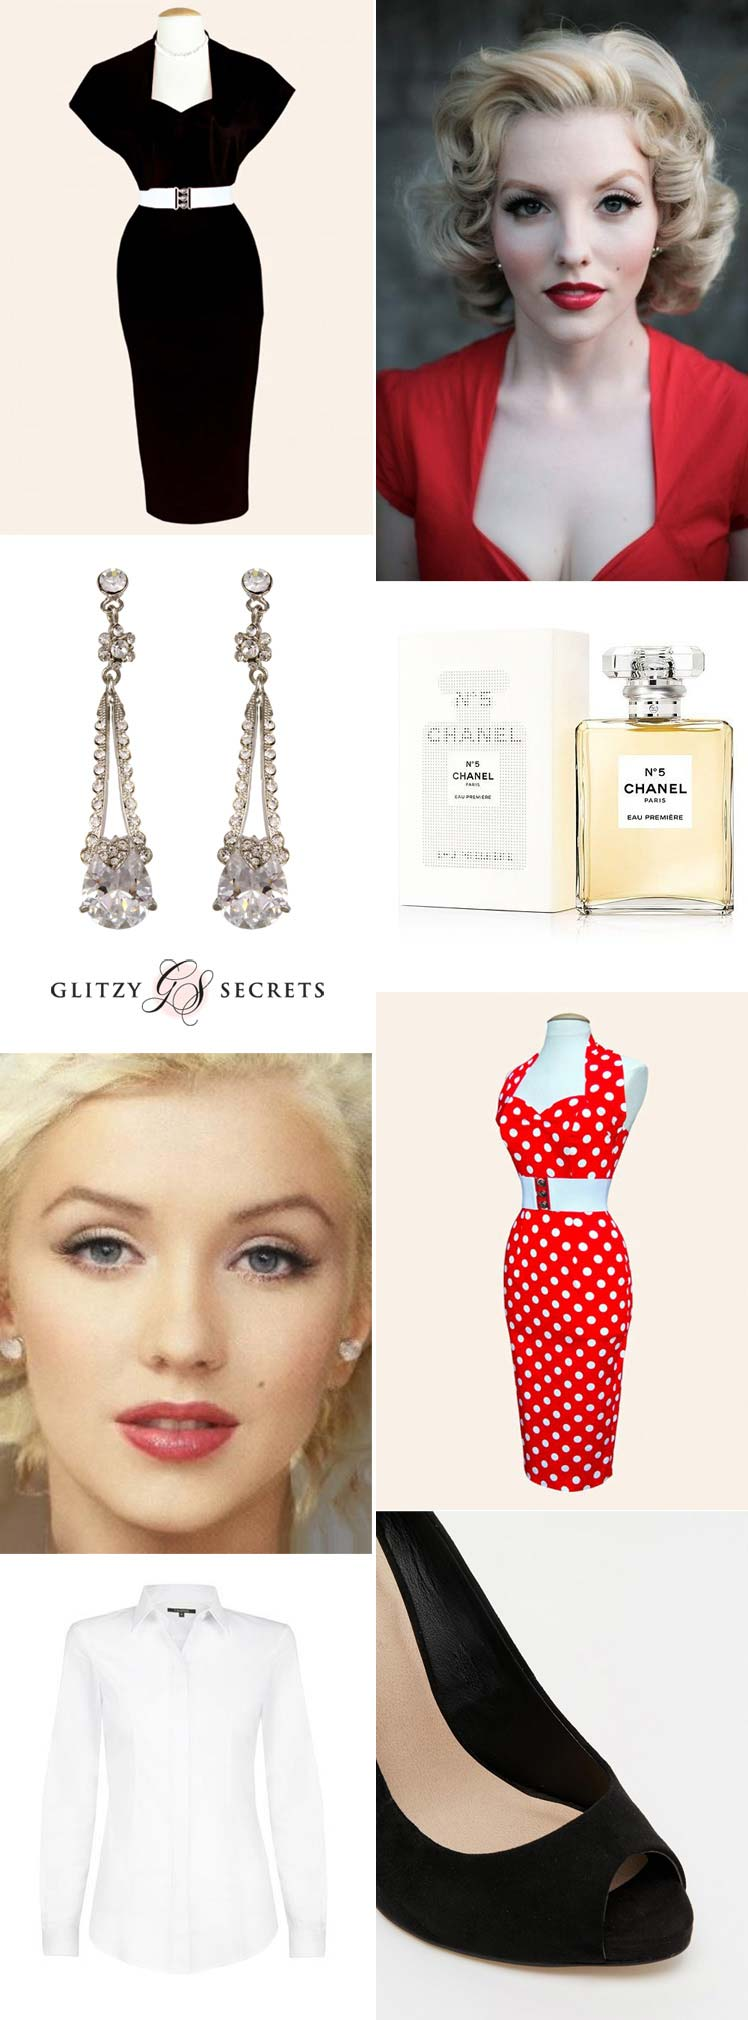 Be inspired by the style of Marilyn Monroe